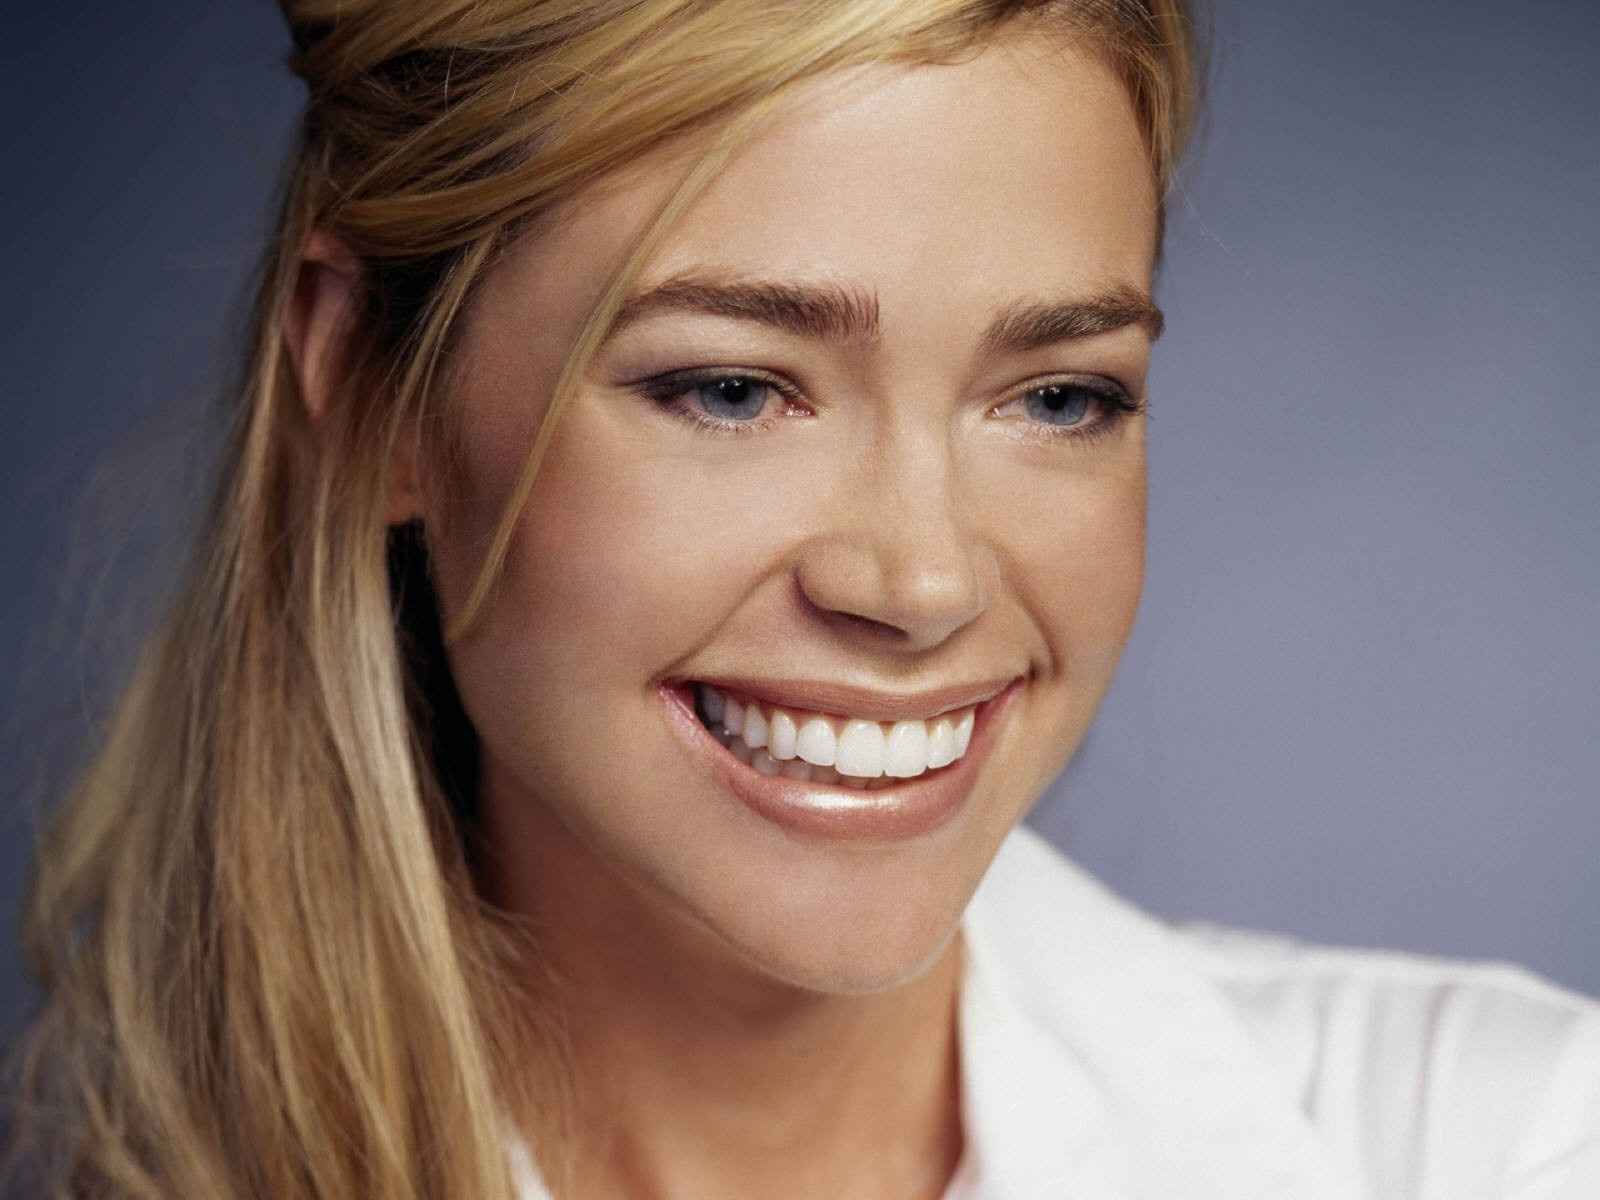 Wallpaper di Denise Richards - 35